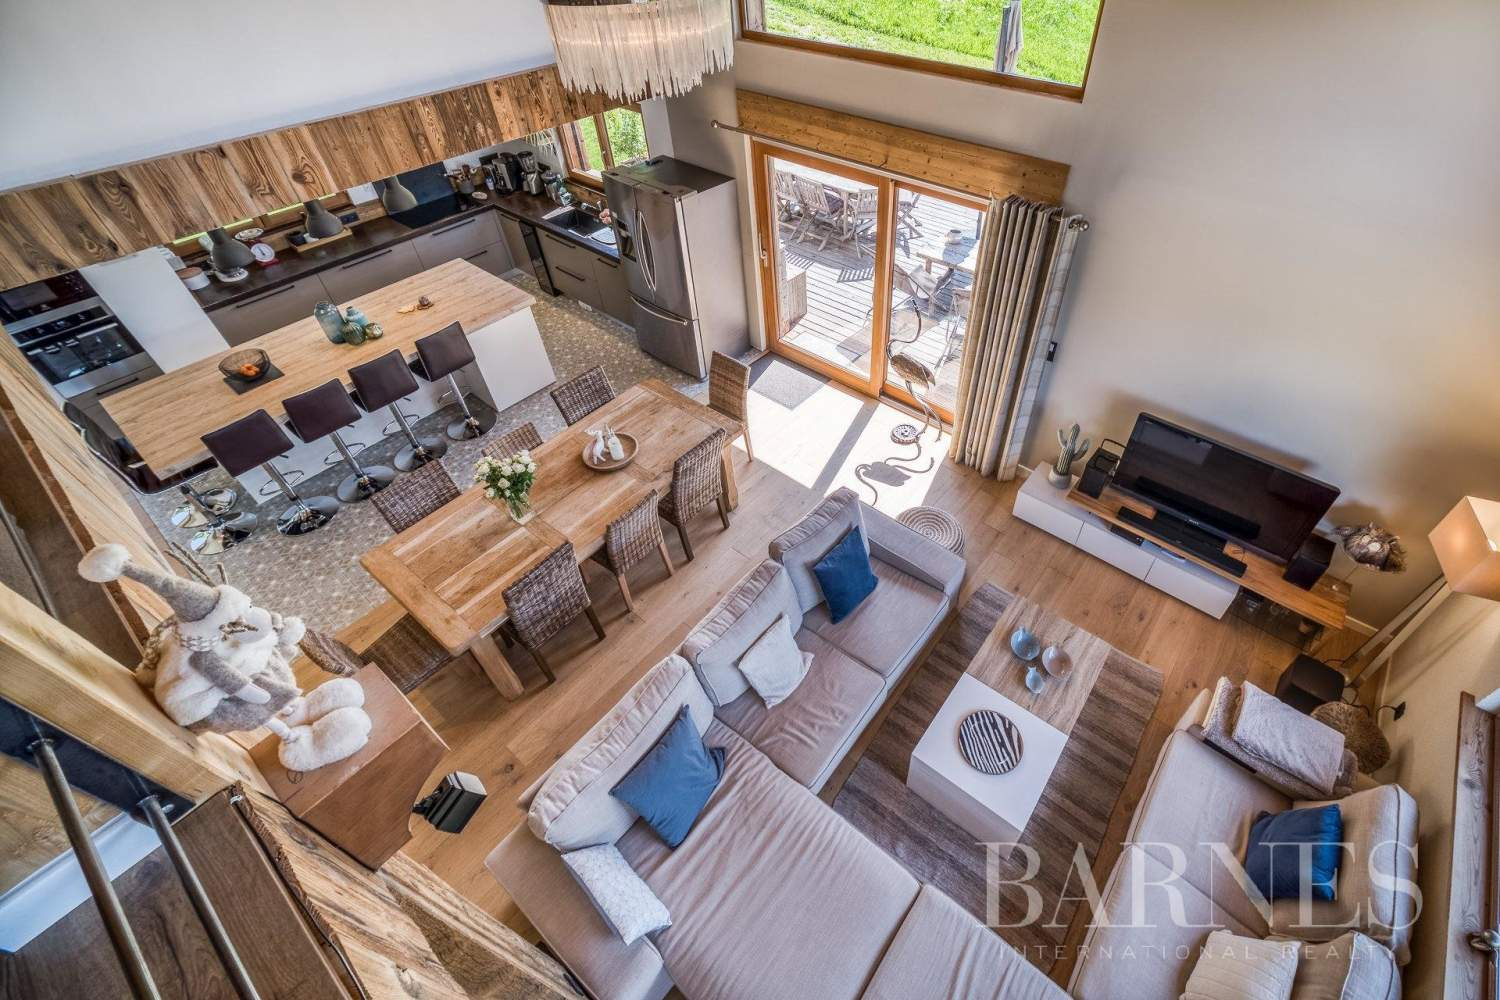 Exclusive to Barnes - Stunning ski-in chalet situated on La Princesse ski slopes picture 5